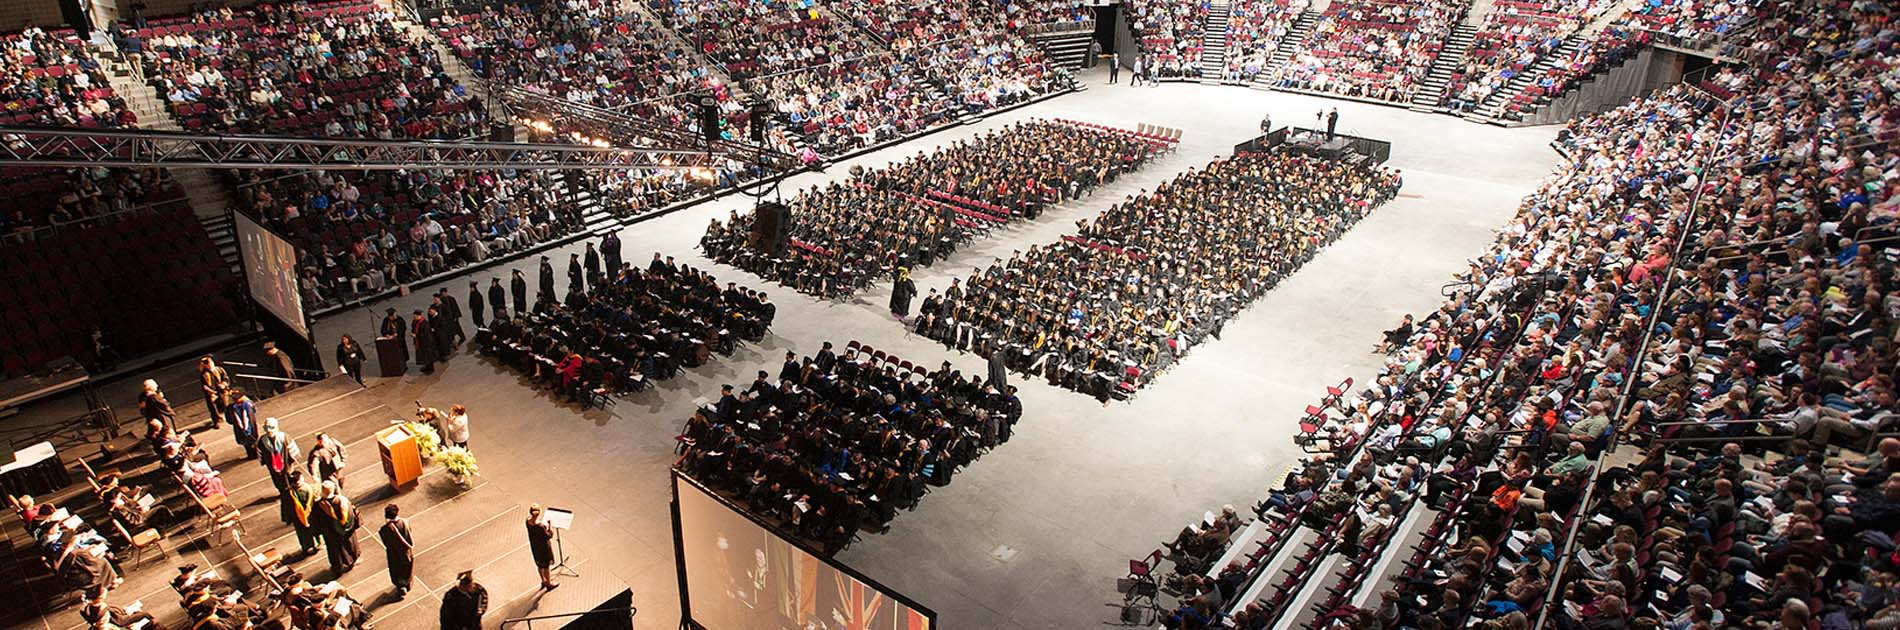 commencement ceremonies at the Cross Insurance Center